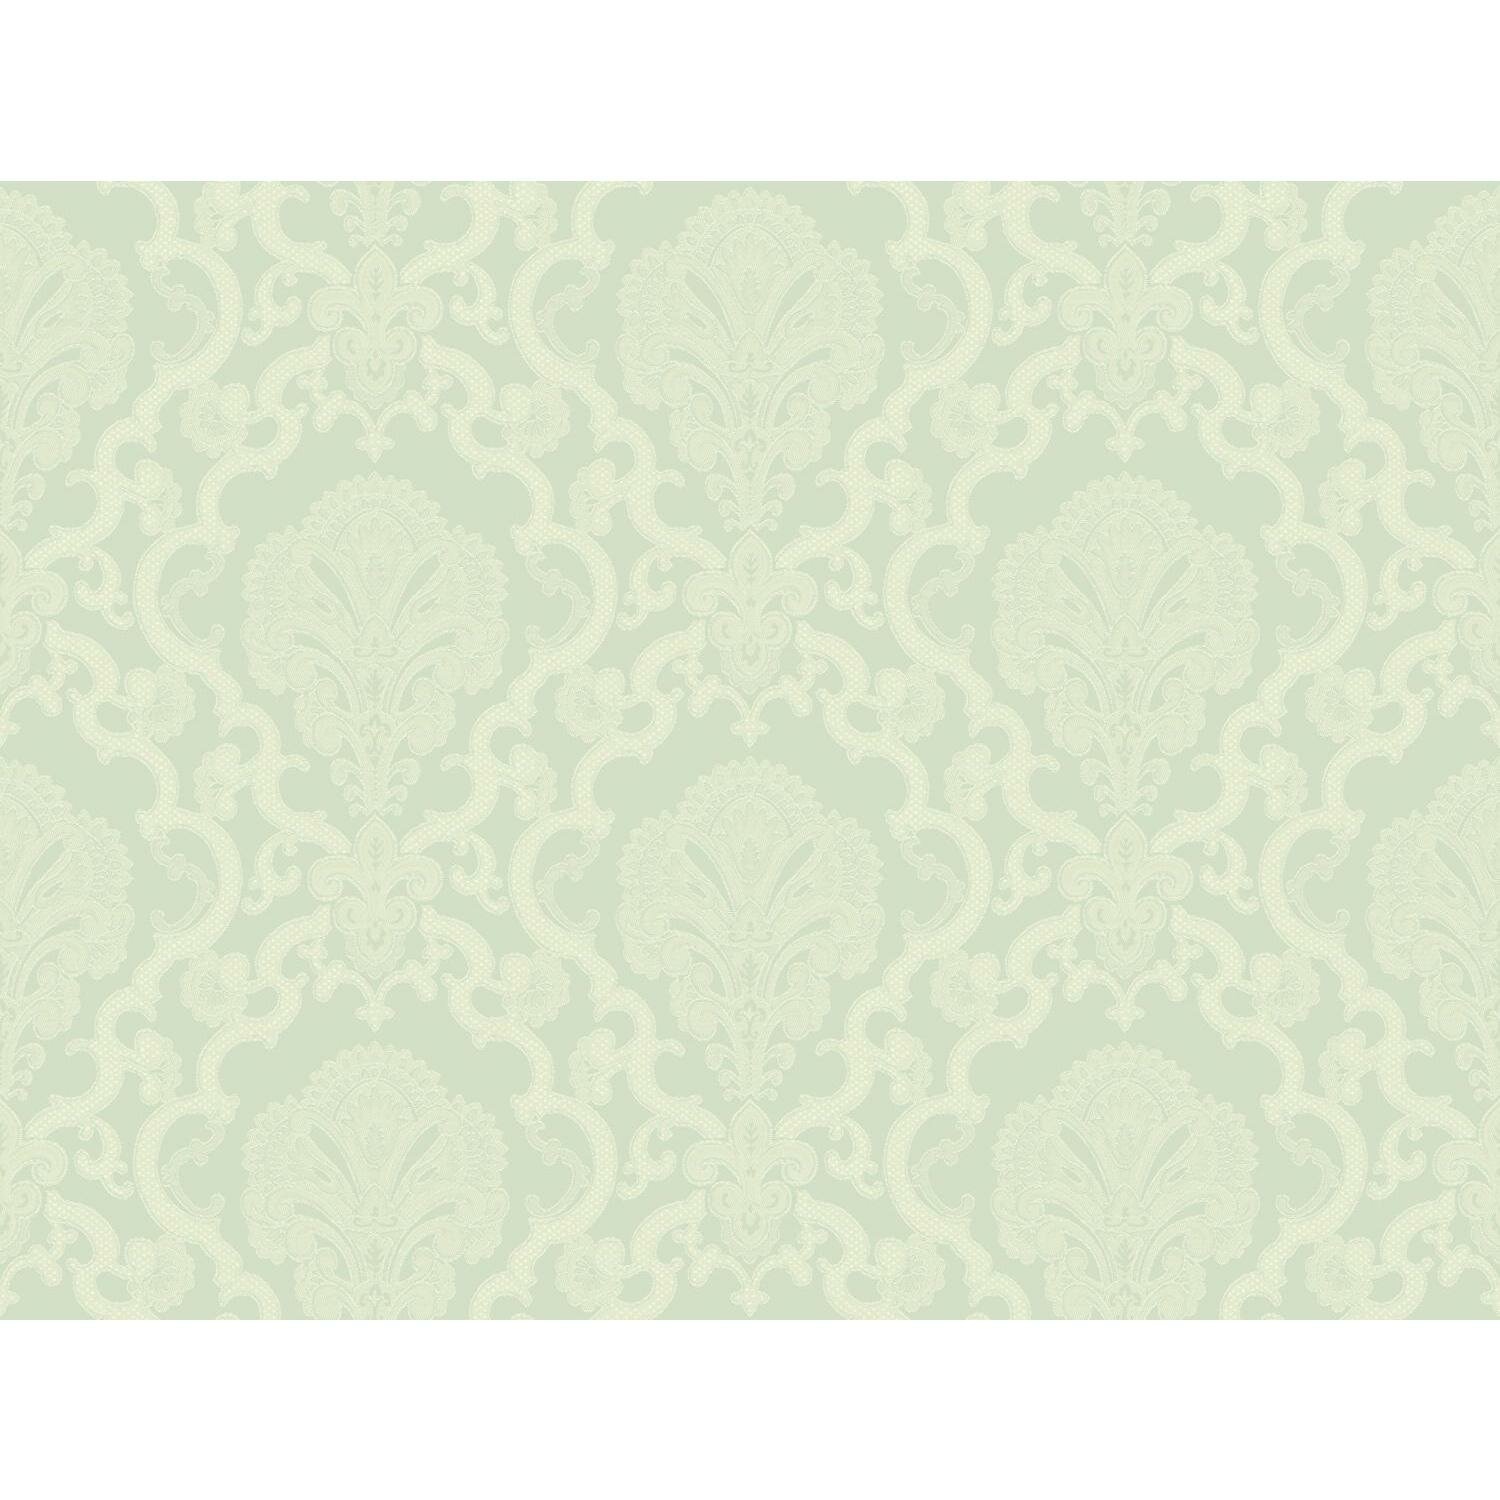 York wallcoverings williamsburg halifax lace 27 39 x 27 for 3d embossed wallpaper